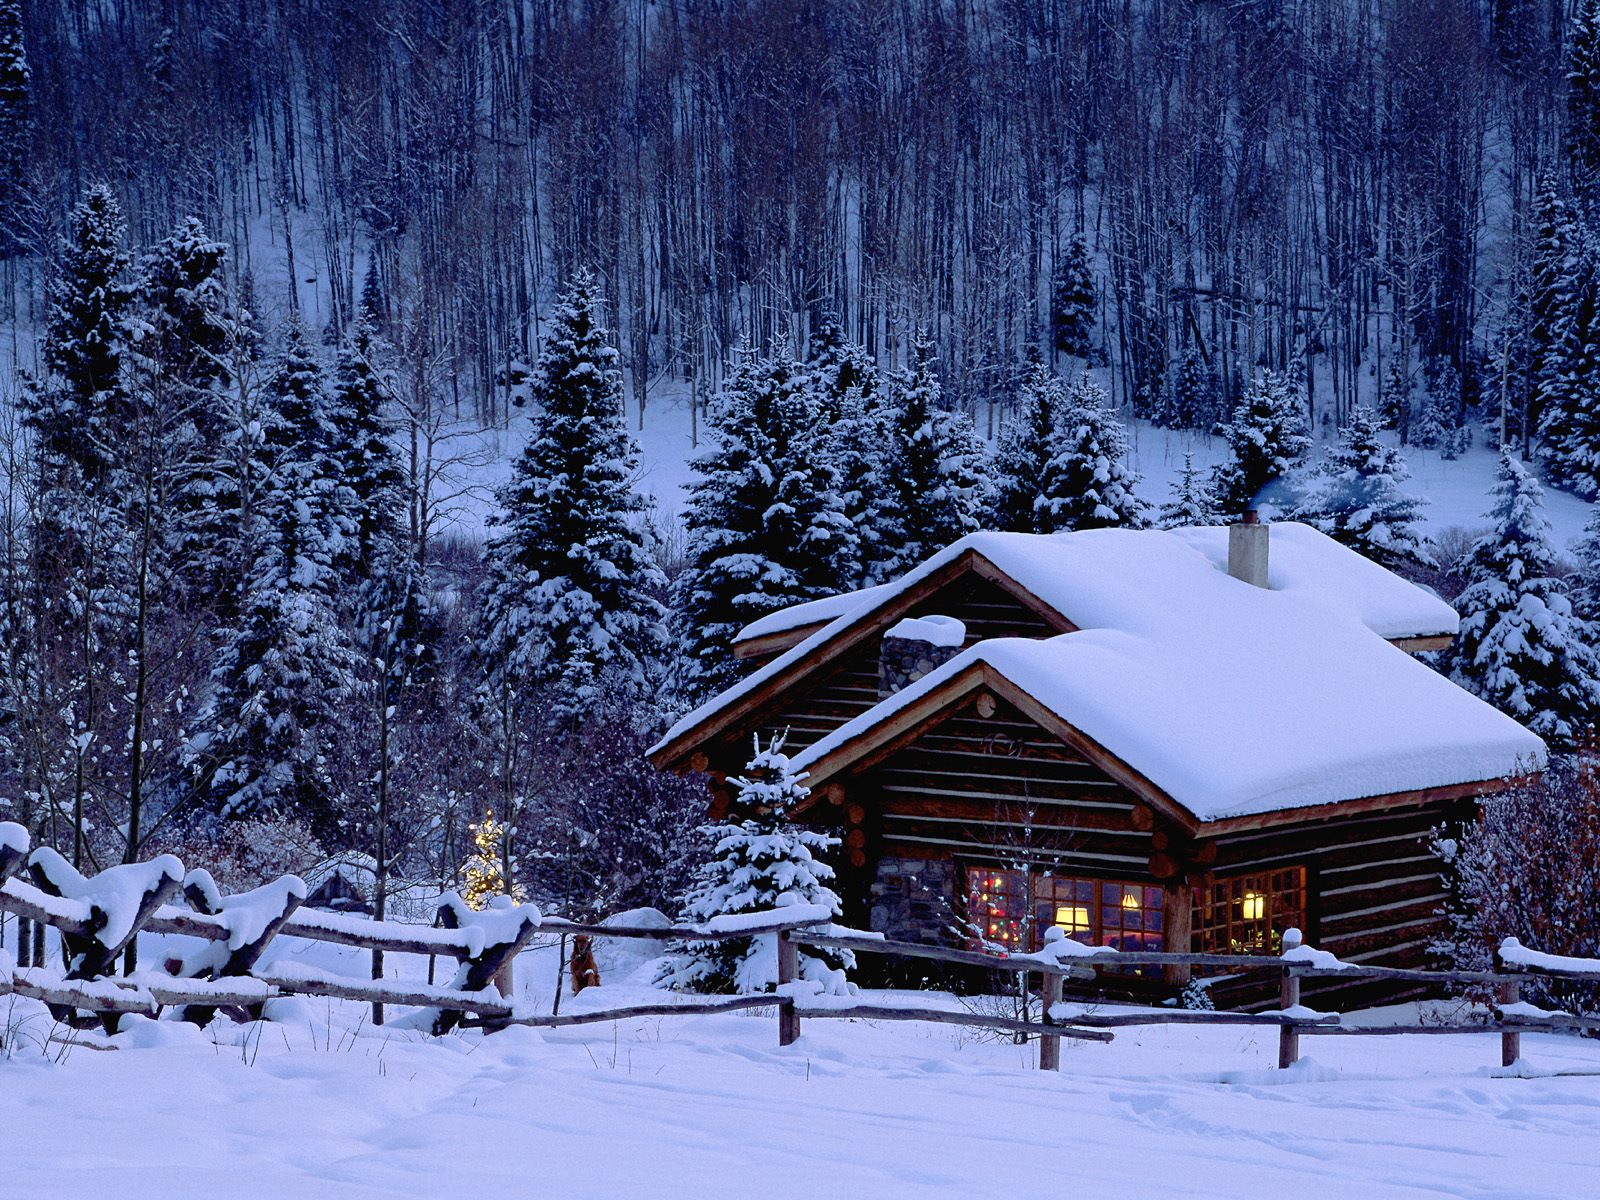 marketing Free Winter wallpaper and other Nature desktop backgrounds 1573